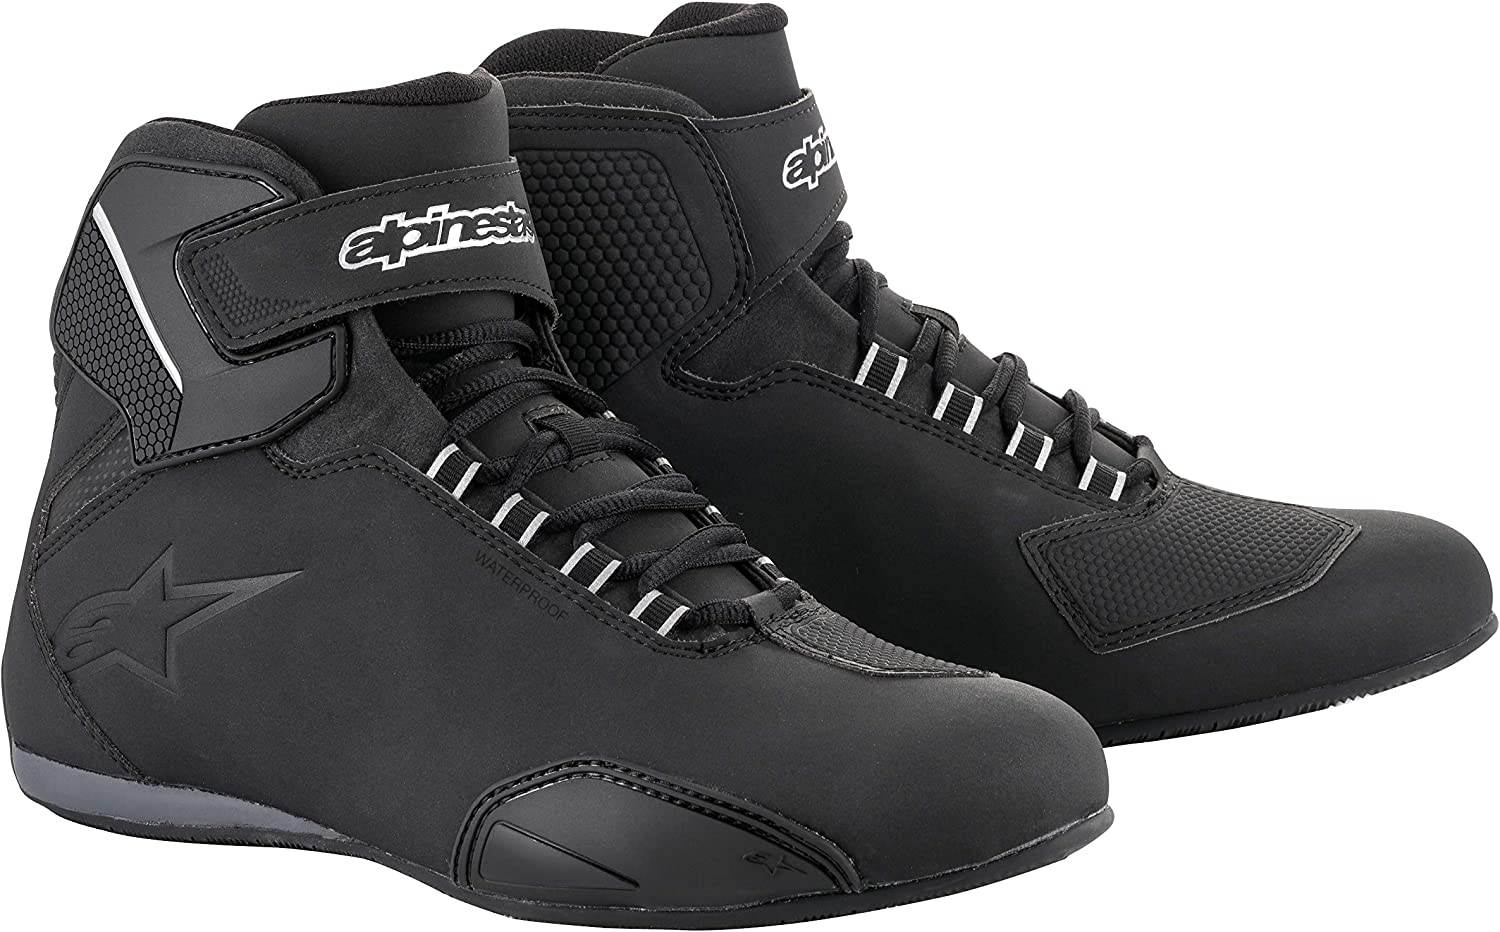 Sektor Wateproof Motorcycle Riding Shoe 12.5, Black